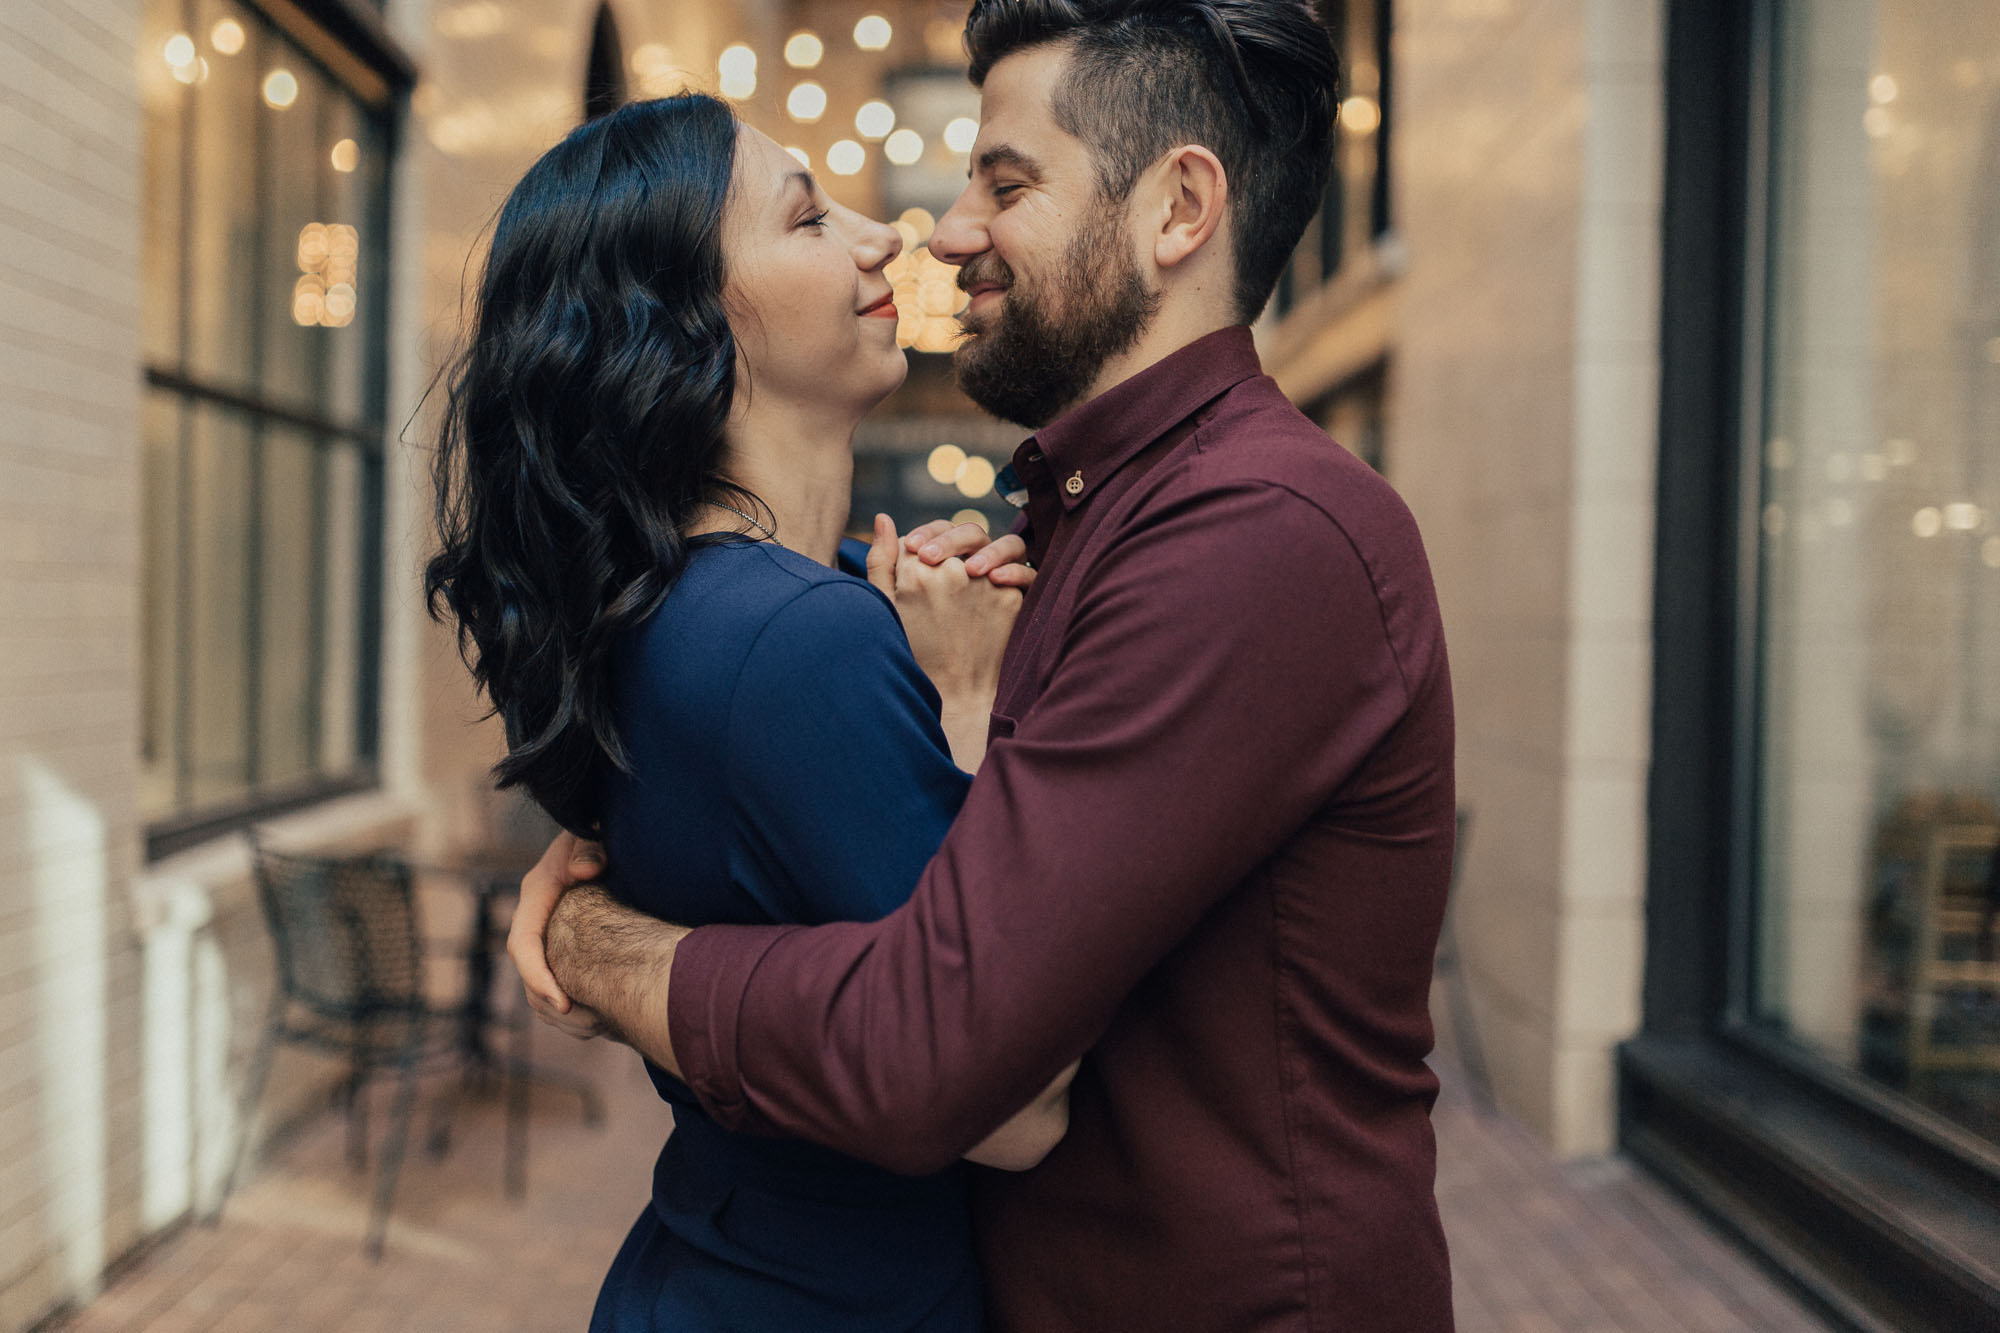 chicago_il_engagement_photographer-0042.jpg